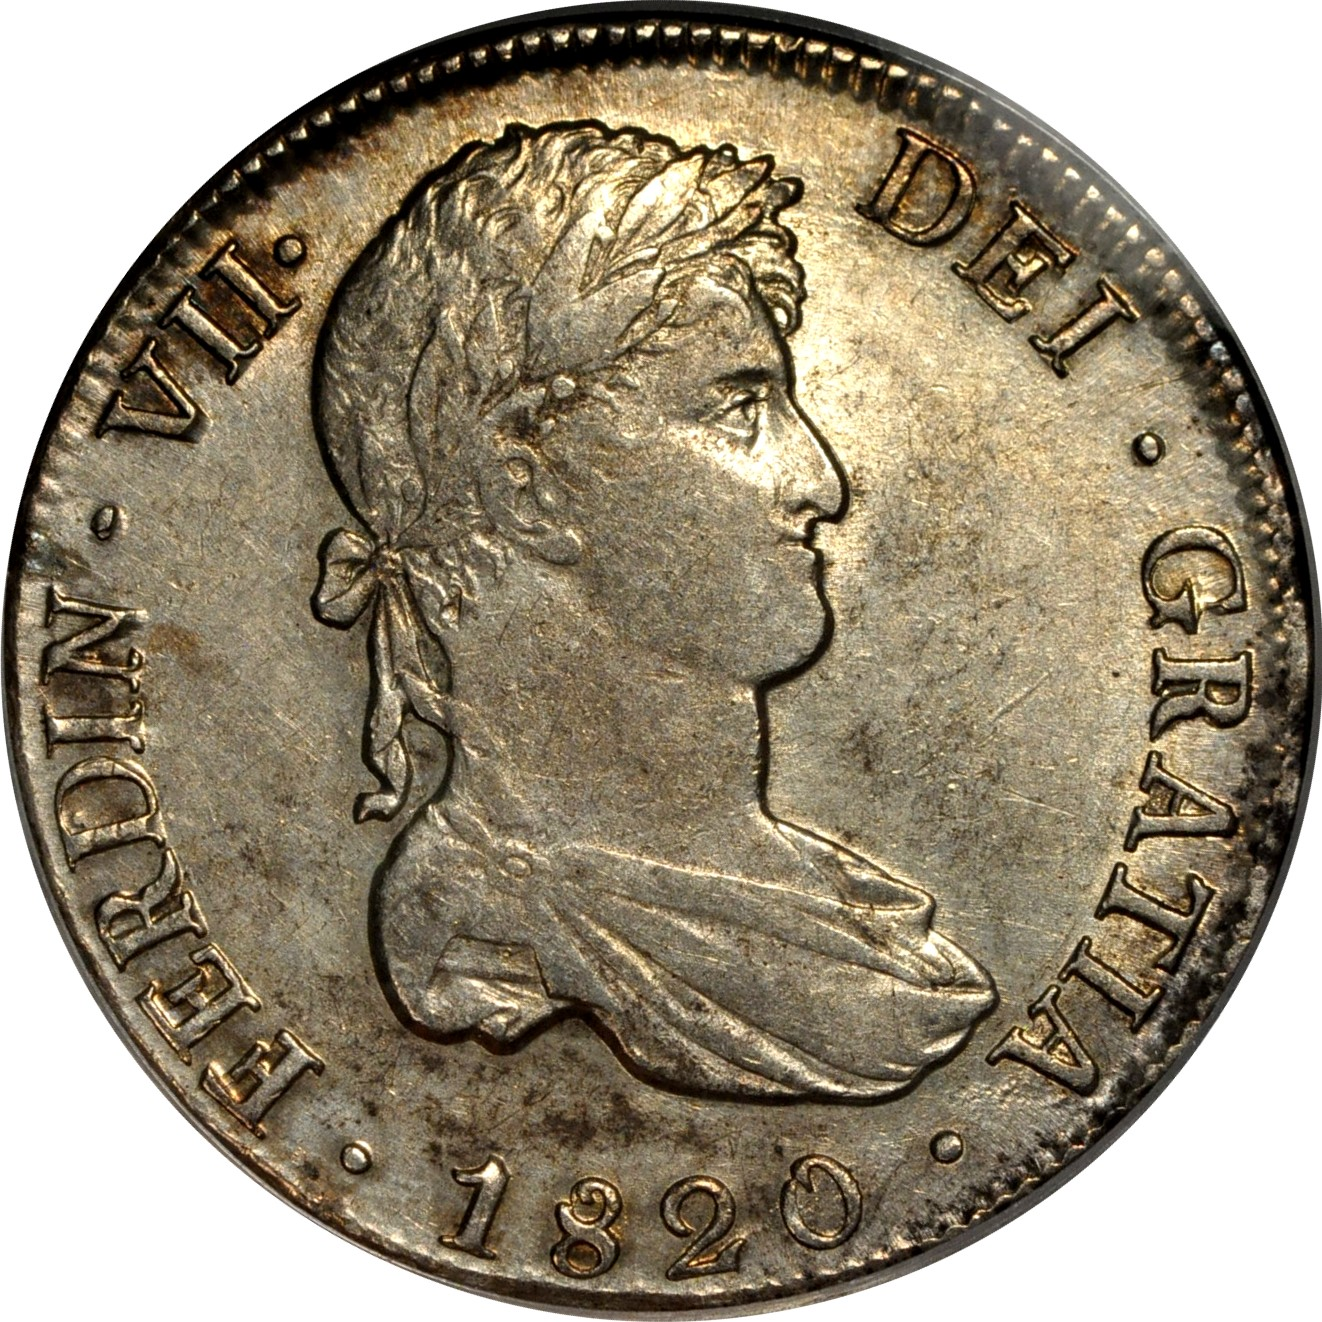 Bolivia Coins For Sale On Collectors Corner